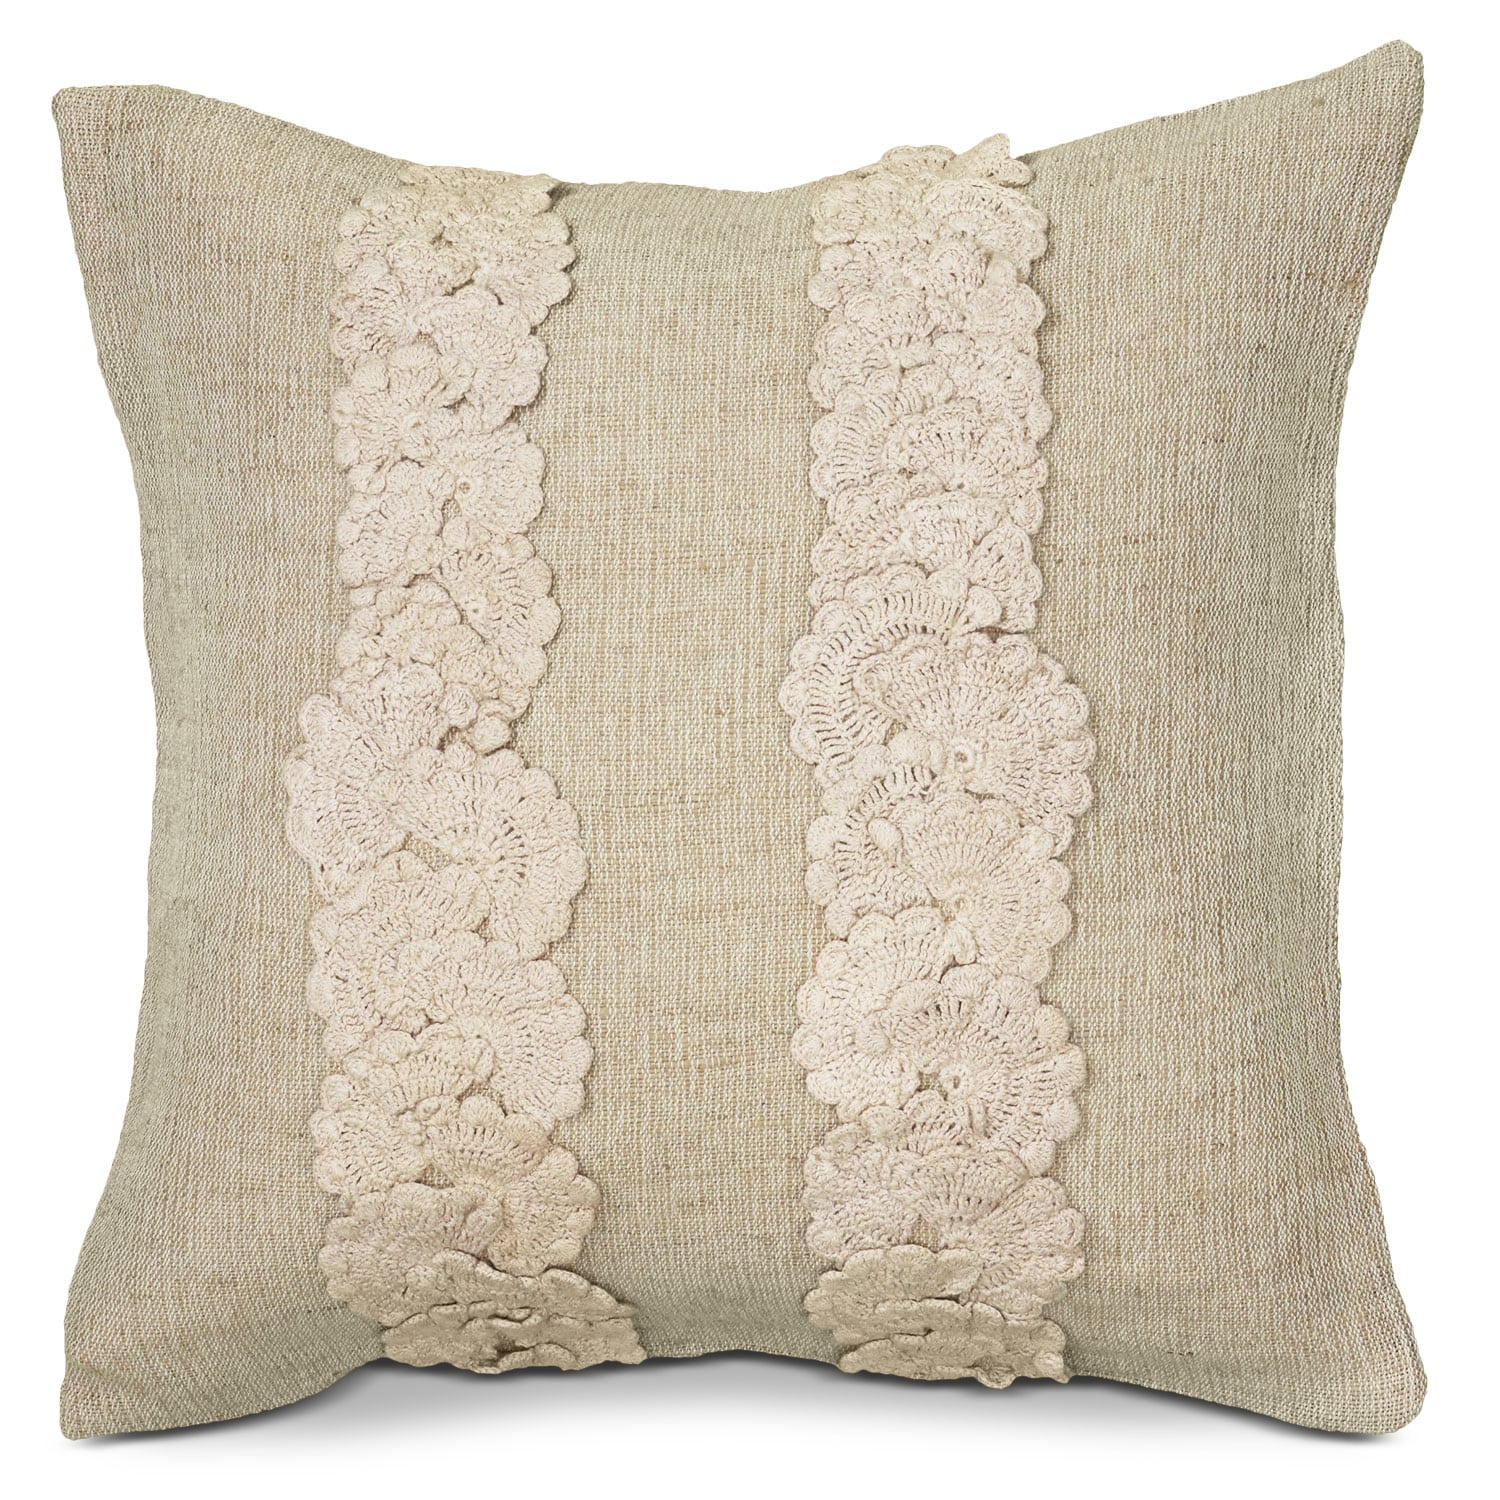 Lady Decorative Pillow